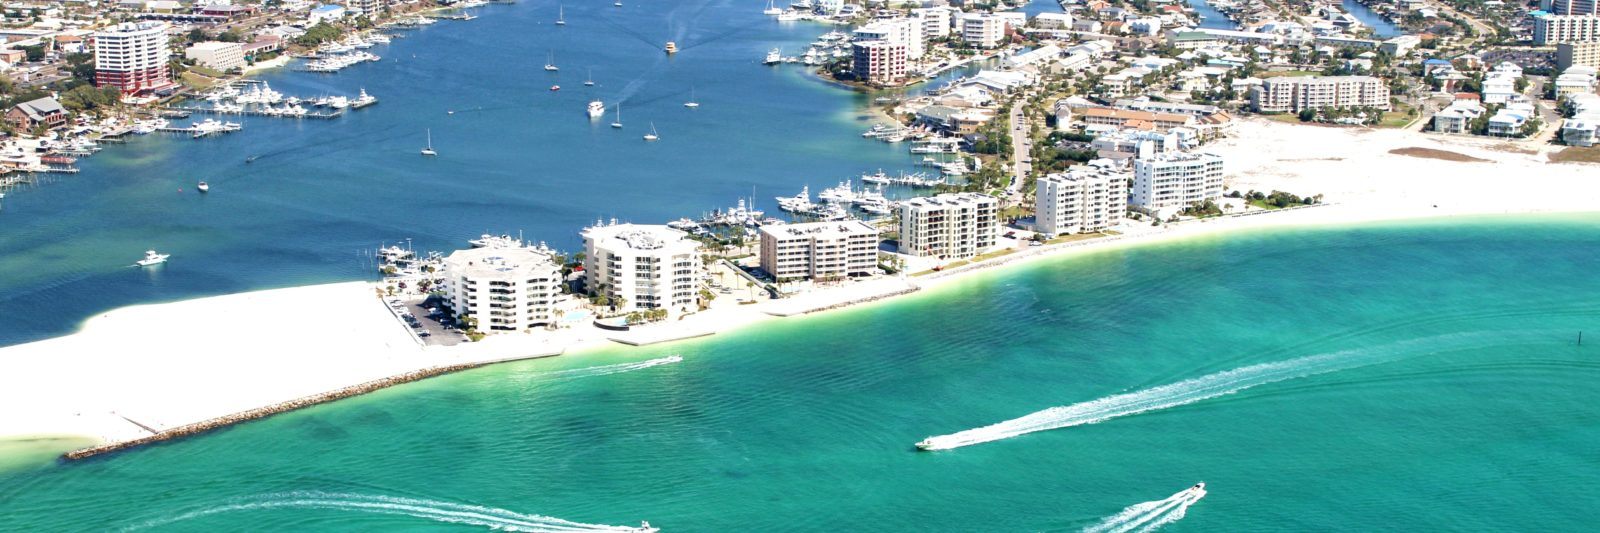 aerial view of the emerald coast